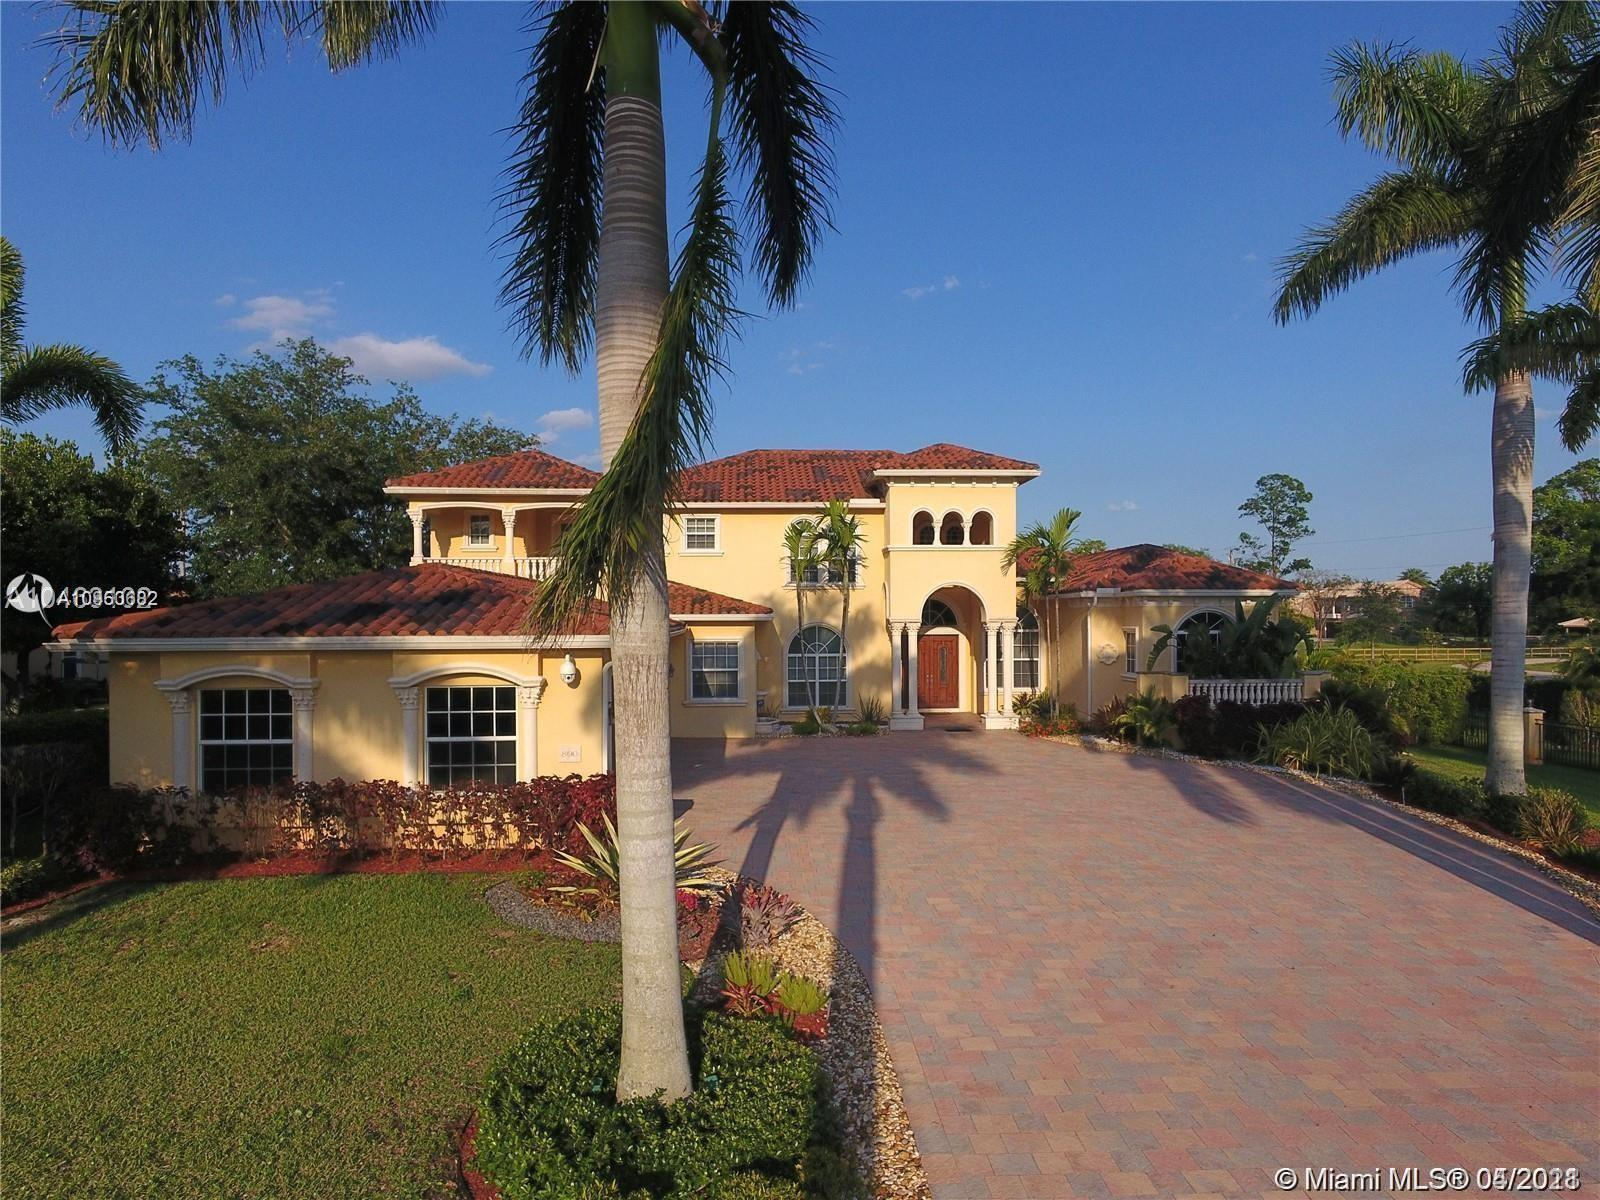 Beautiful and fully furnished 7 bed/7 bath 2 story Mediterranean style home, sitting on a builder's acre lot, in the exclusive community of Plantation Acres. Property features elegant foyer w/cathedral ceilings, office & media room. Amazing kitchen w/granite countertops, wood cabinets, gourmet gas range w/8 cooking burners, wood cabinetry & cooking island. Formal dining room w/adjacent patio. Living room w/floor to ceiling fireplace & large family room, both overlooking the beautiful pool & patio, floor to ceiling glass windows. Home also features 24x24 marble floors in living areas & wood in all bedrooms & stairs. Master bedroom on first floor with 2 walking closets, sitting room & master bathroom w/2 showers & 2 sinks. 4 car garage & driveway can fit 10 cars. This is a must see!